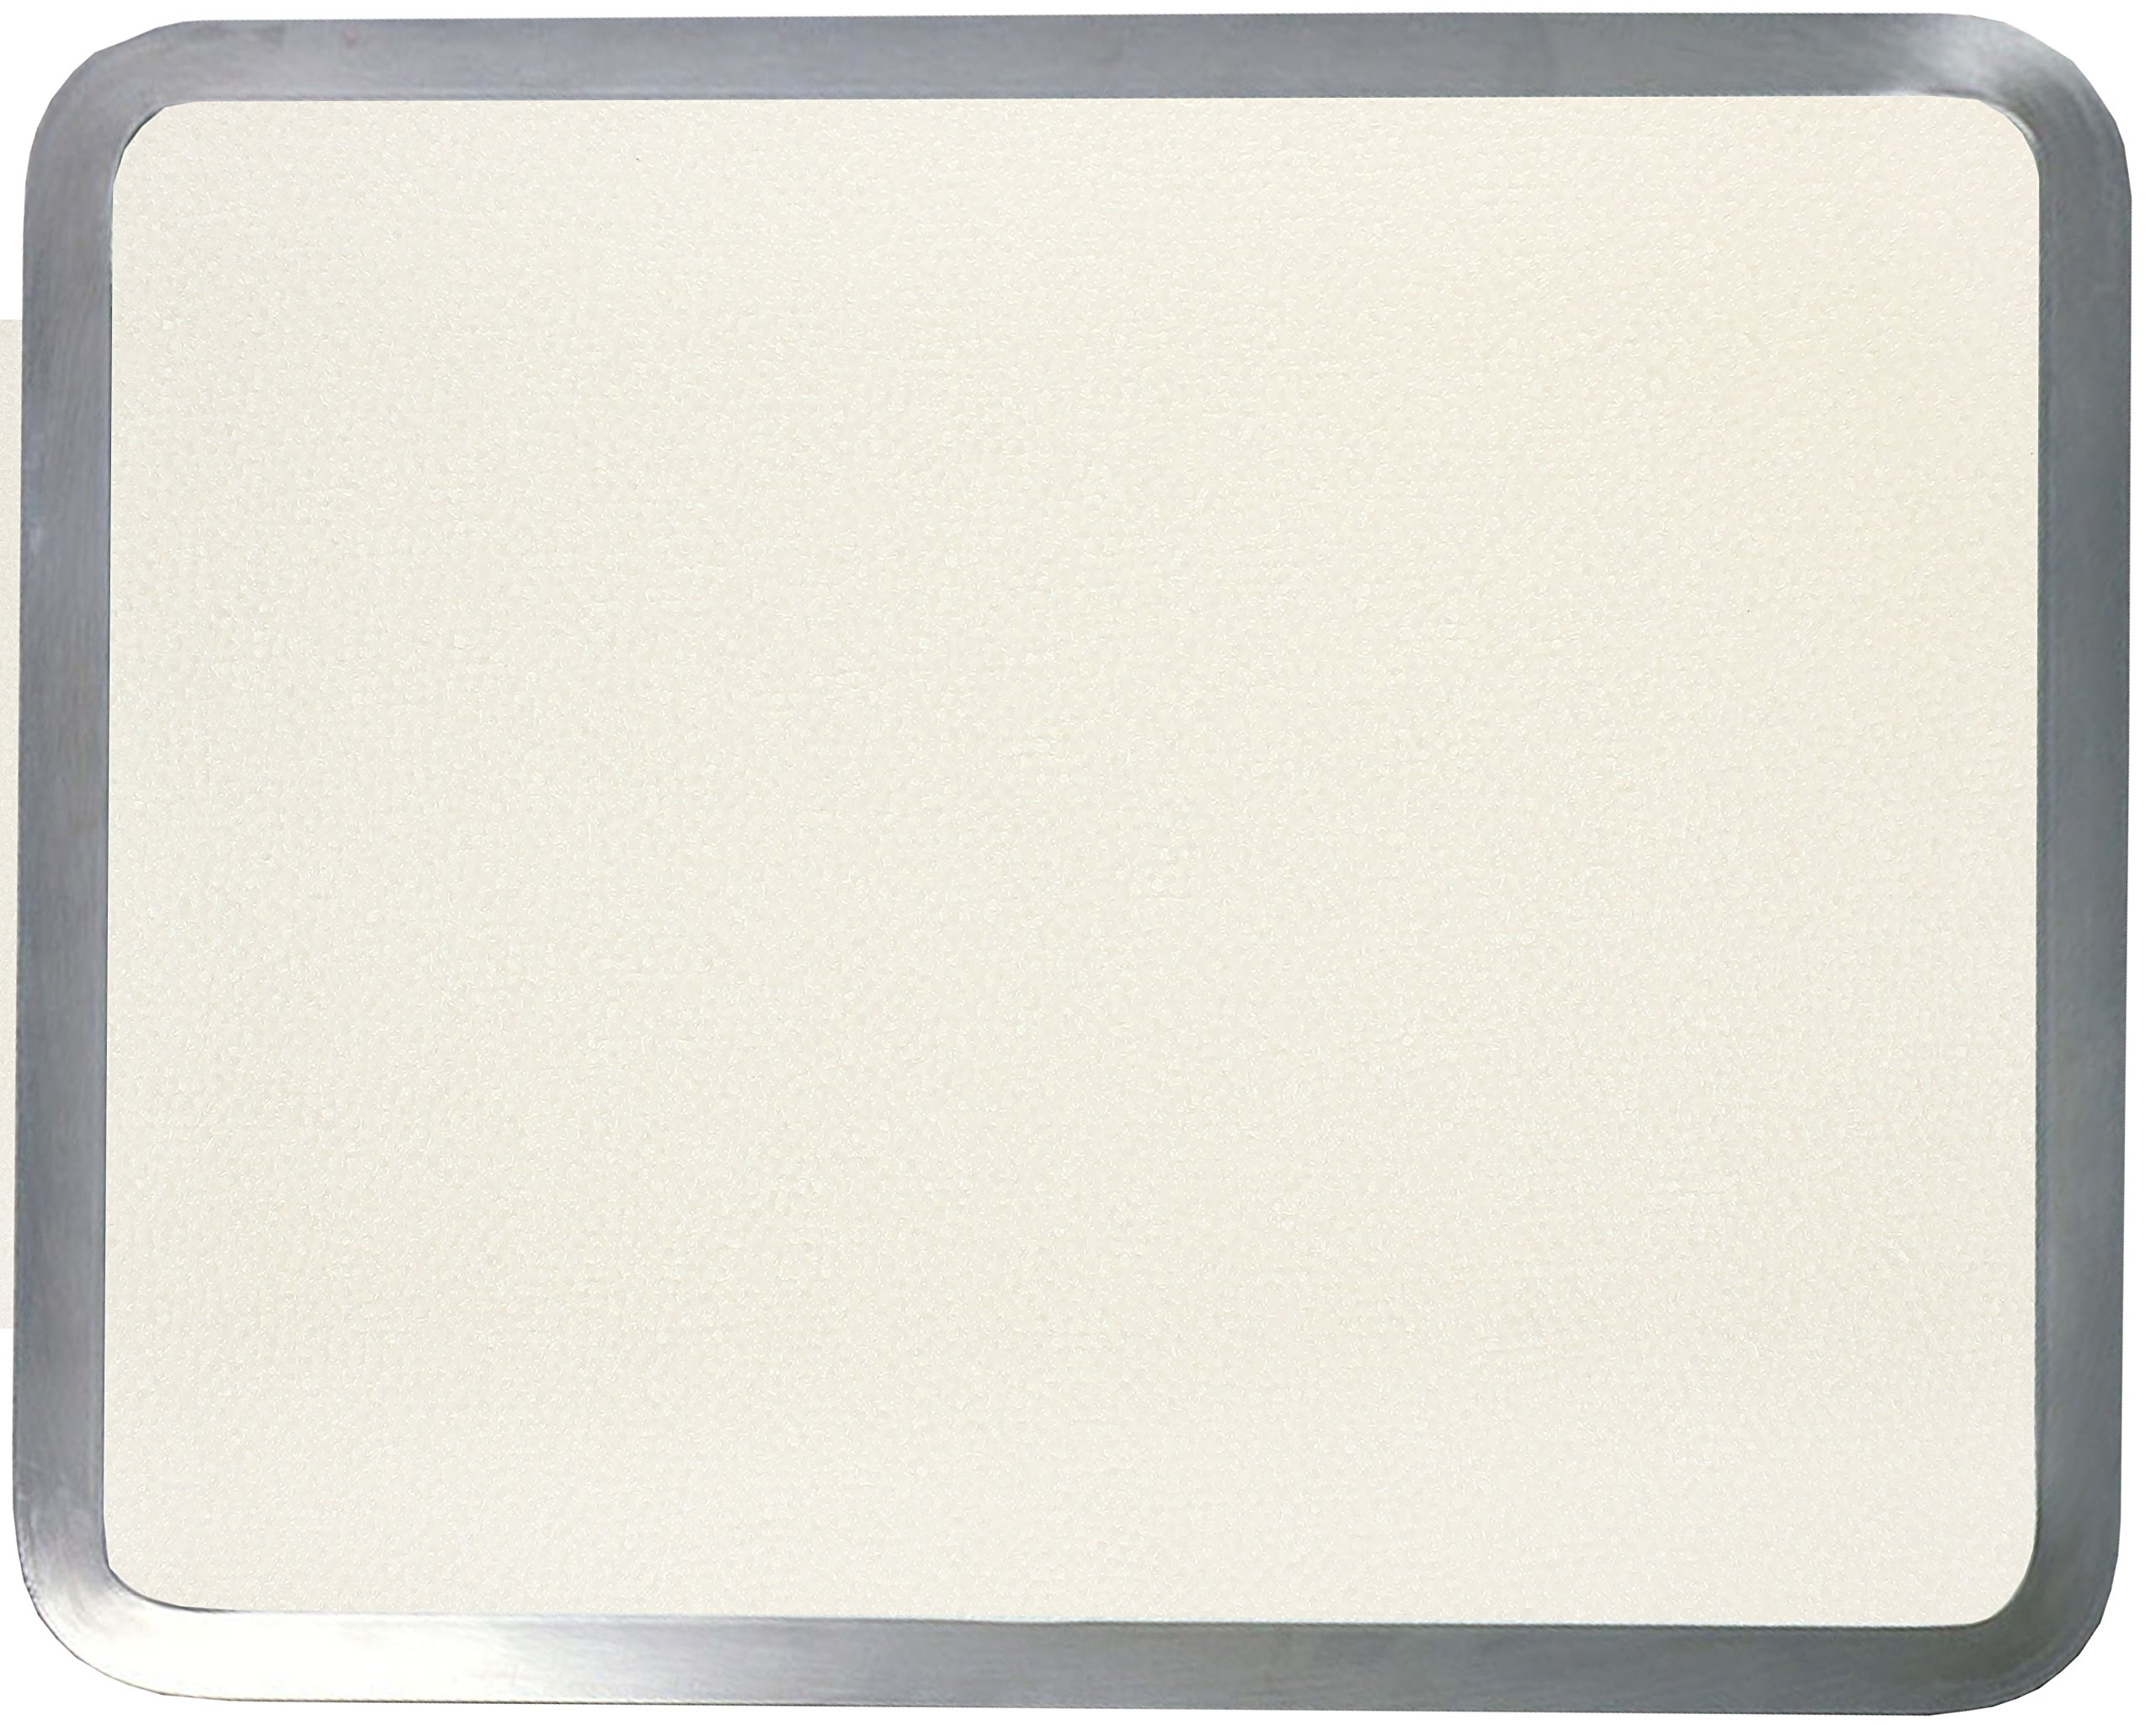 Vance Surface Saver 71215AL 12 X 15'' Almond Built-in Surface Saver Tempered Glass Cutting Board, Almond by Vance Surface Saver